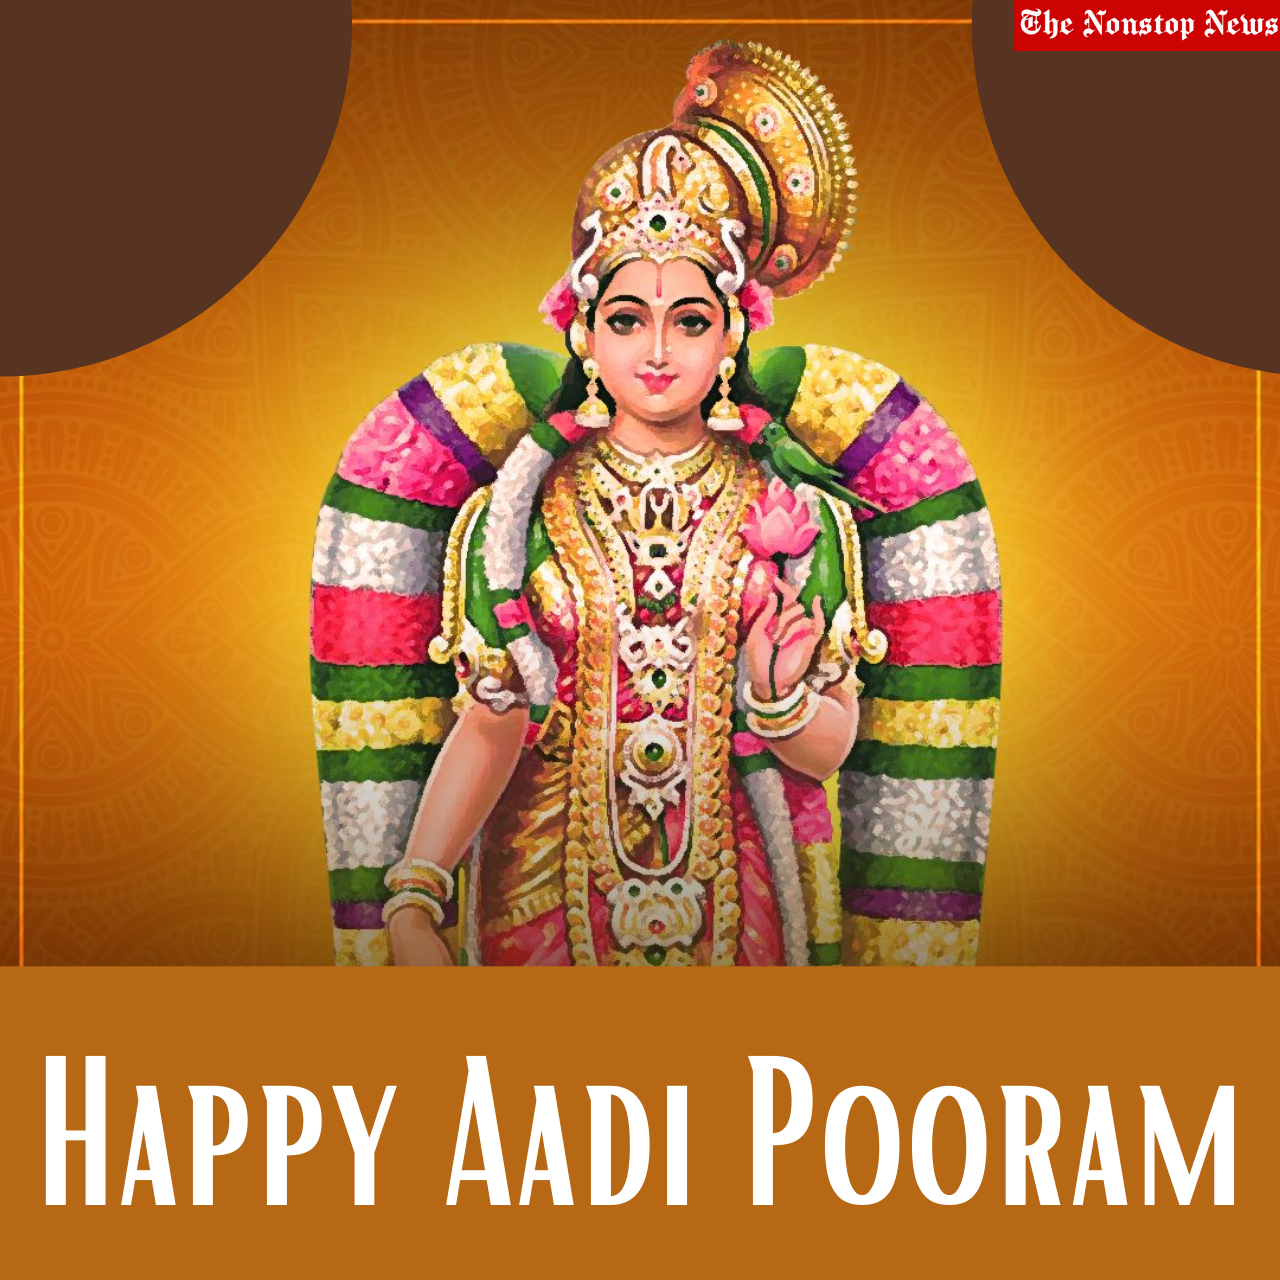 Aadi Pooram 2021 Wishes, Images, Messages, Quotes, Greetings, and Status to Share